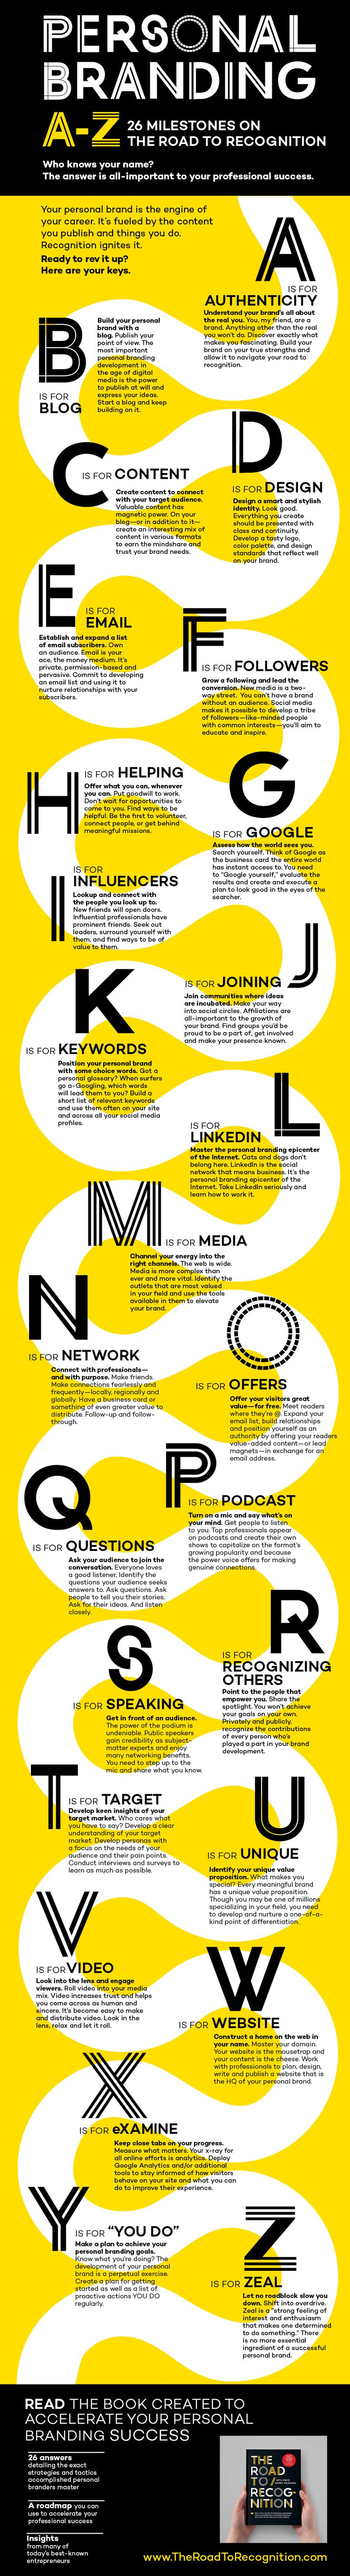 Personal Branding Infographic from the Road to Recognition. We are giving away a copy of Seth Price's Road to Recognition in our 10 Life Changing Books Giveaway Enter here: https://codiesanchez.leadpages.co/10-books-that-will-change-your-life-giveaway-codie-sanchez/ This book paves the path for your personal brand success. Learn how to master the art and science of personal branding. Win your copy now before the giveaway ends on December 22!